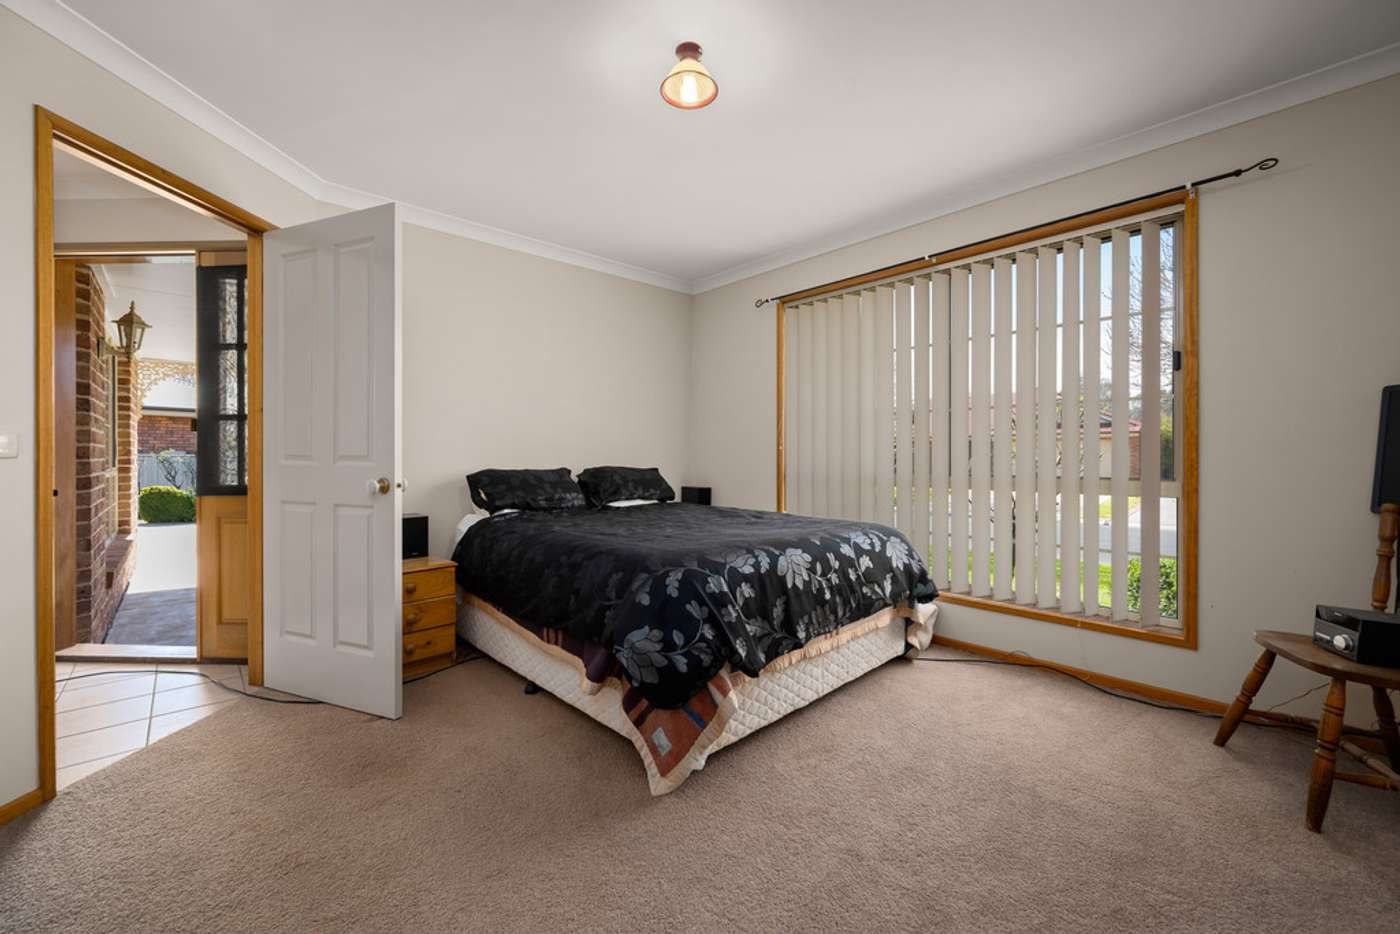 Sixth view of Homely house listing, 3 Saunders Crescent, Wodonga VIC 3690